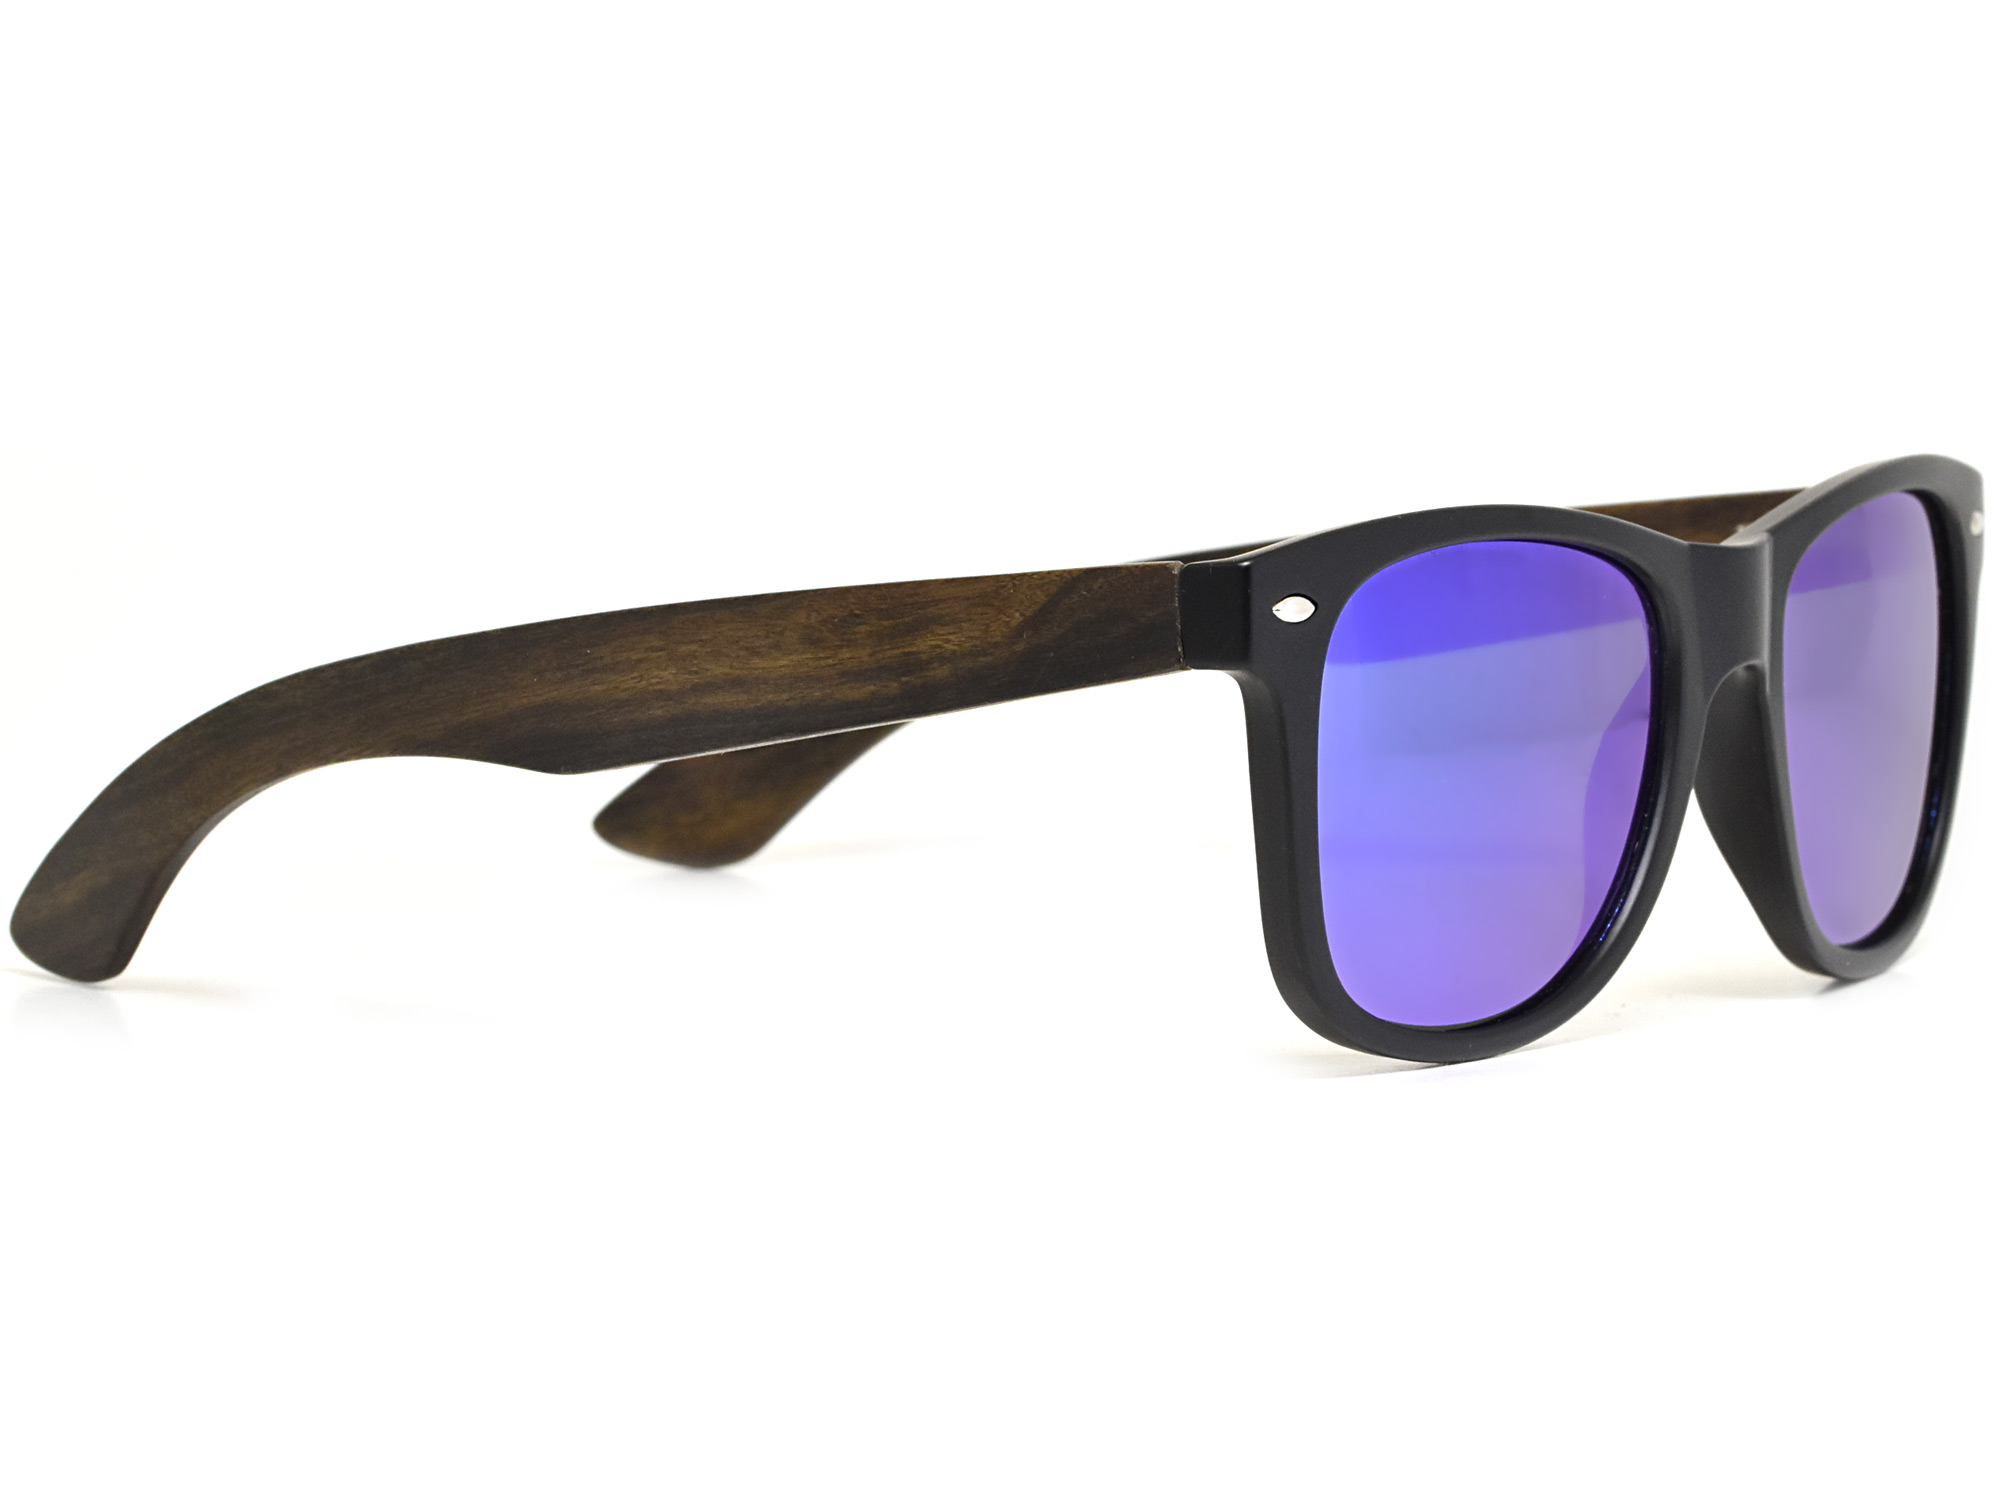 Ebony wood sunglasses with blue mirrored lenses right